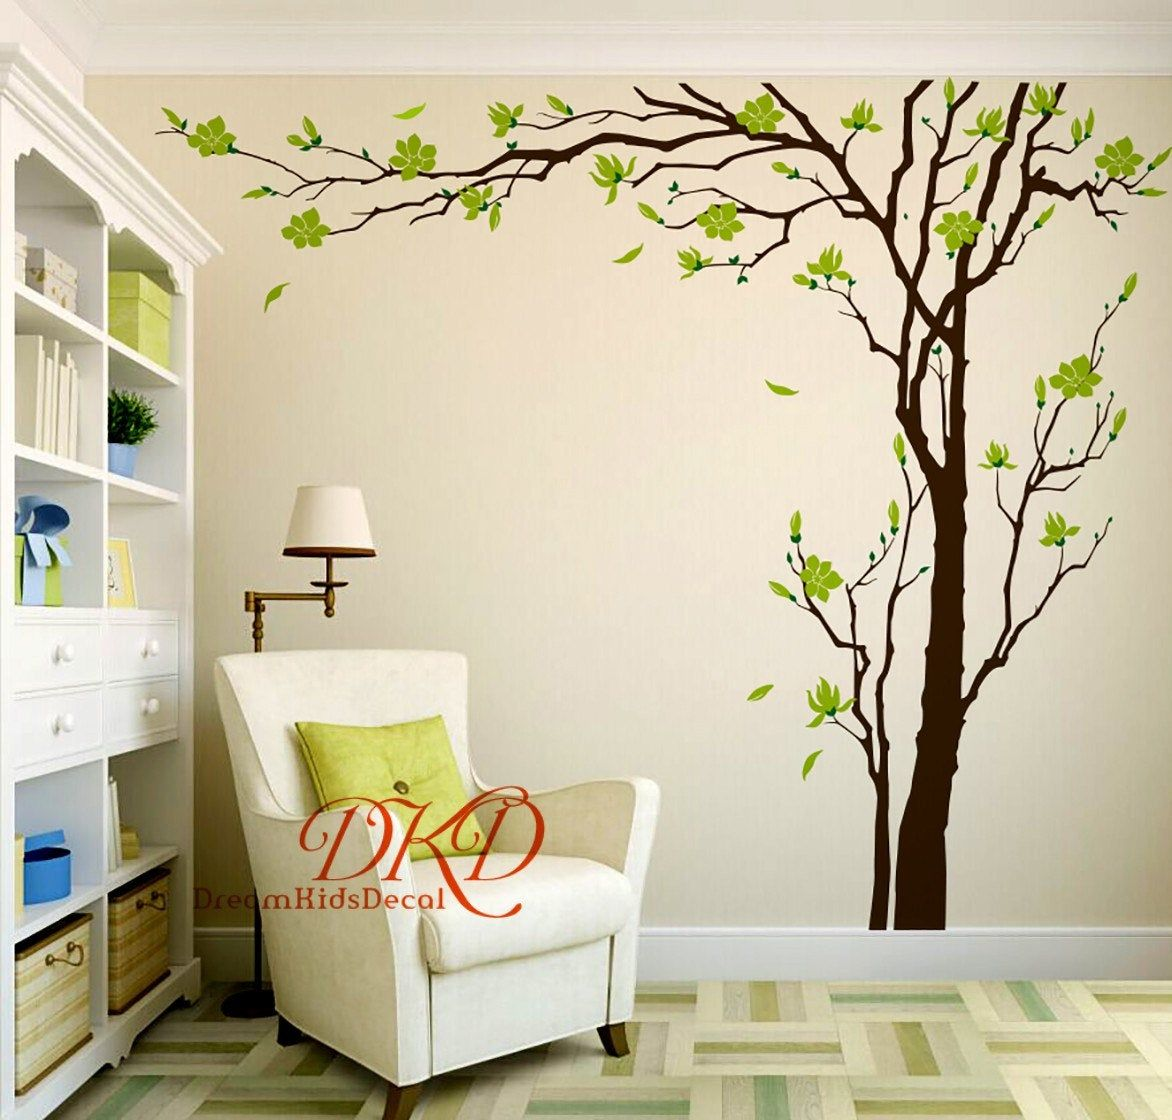 Cherry Blossom Tree Wall Decals Wall Sticker Living Room Wall Image 0 Tree Wall Decal Wall Art Living Room Wall Decor Living Room